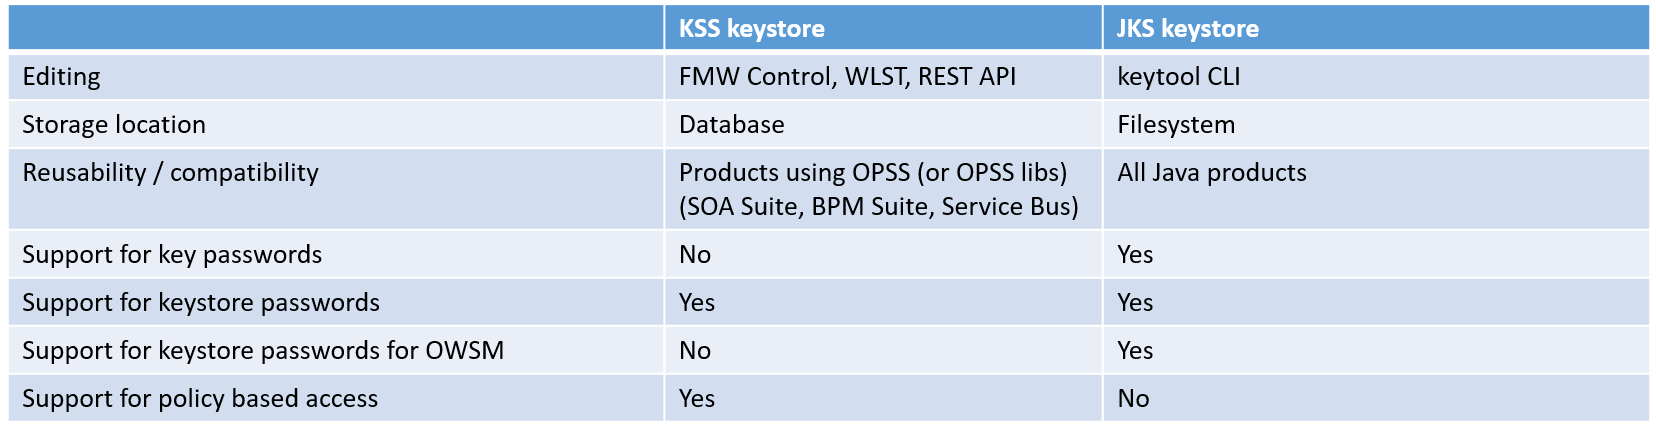 Oracle SOA Suite and WebLogic: Overview of key and keystore